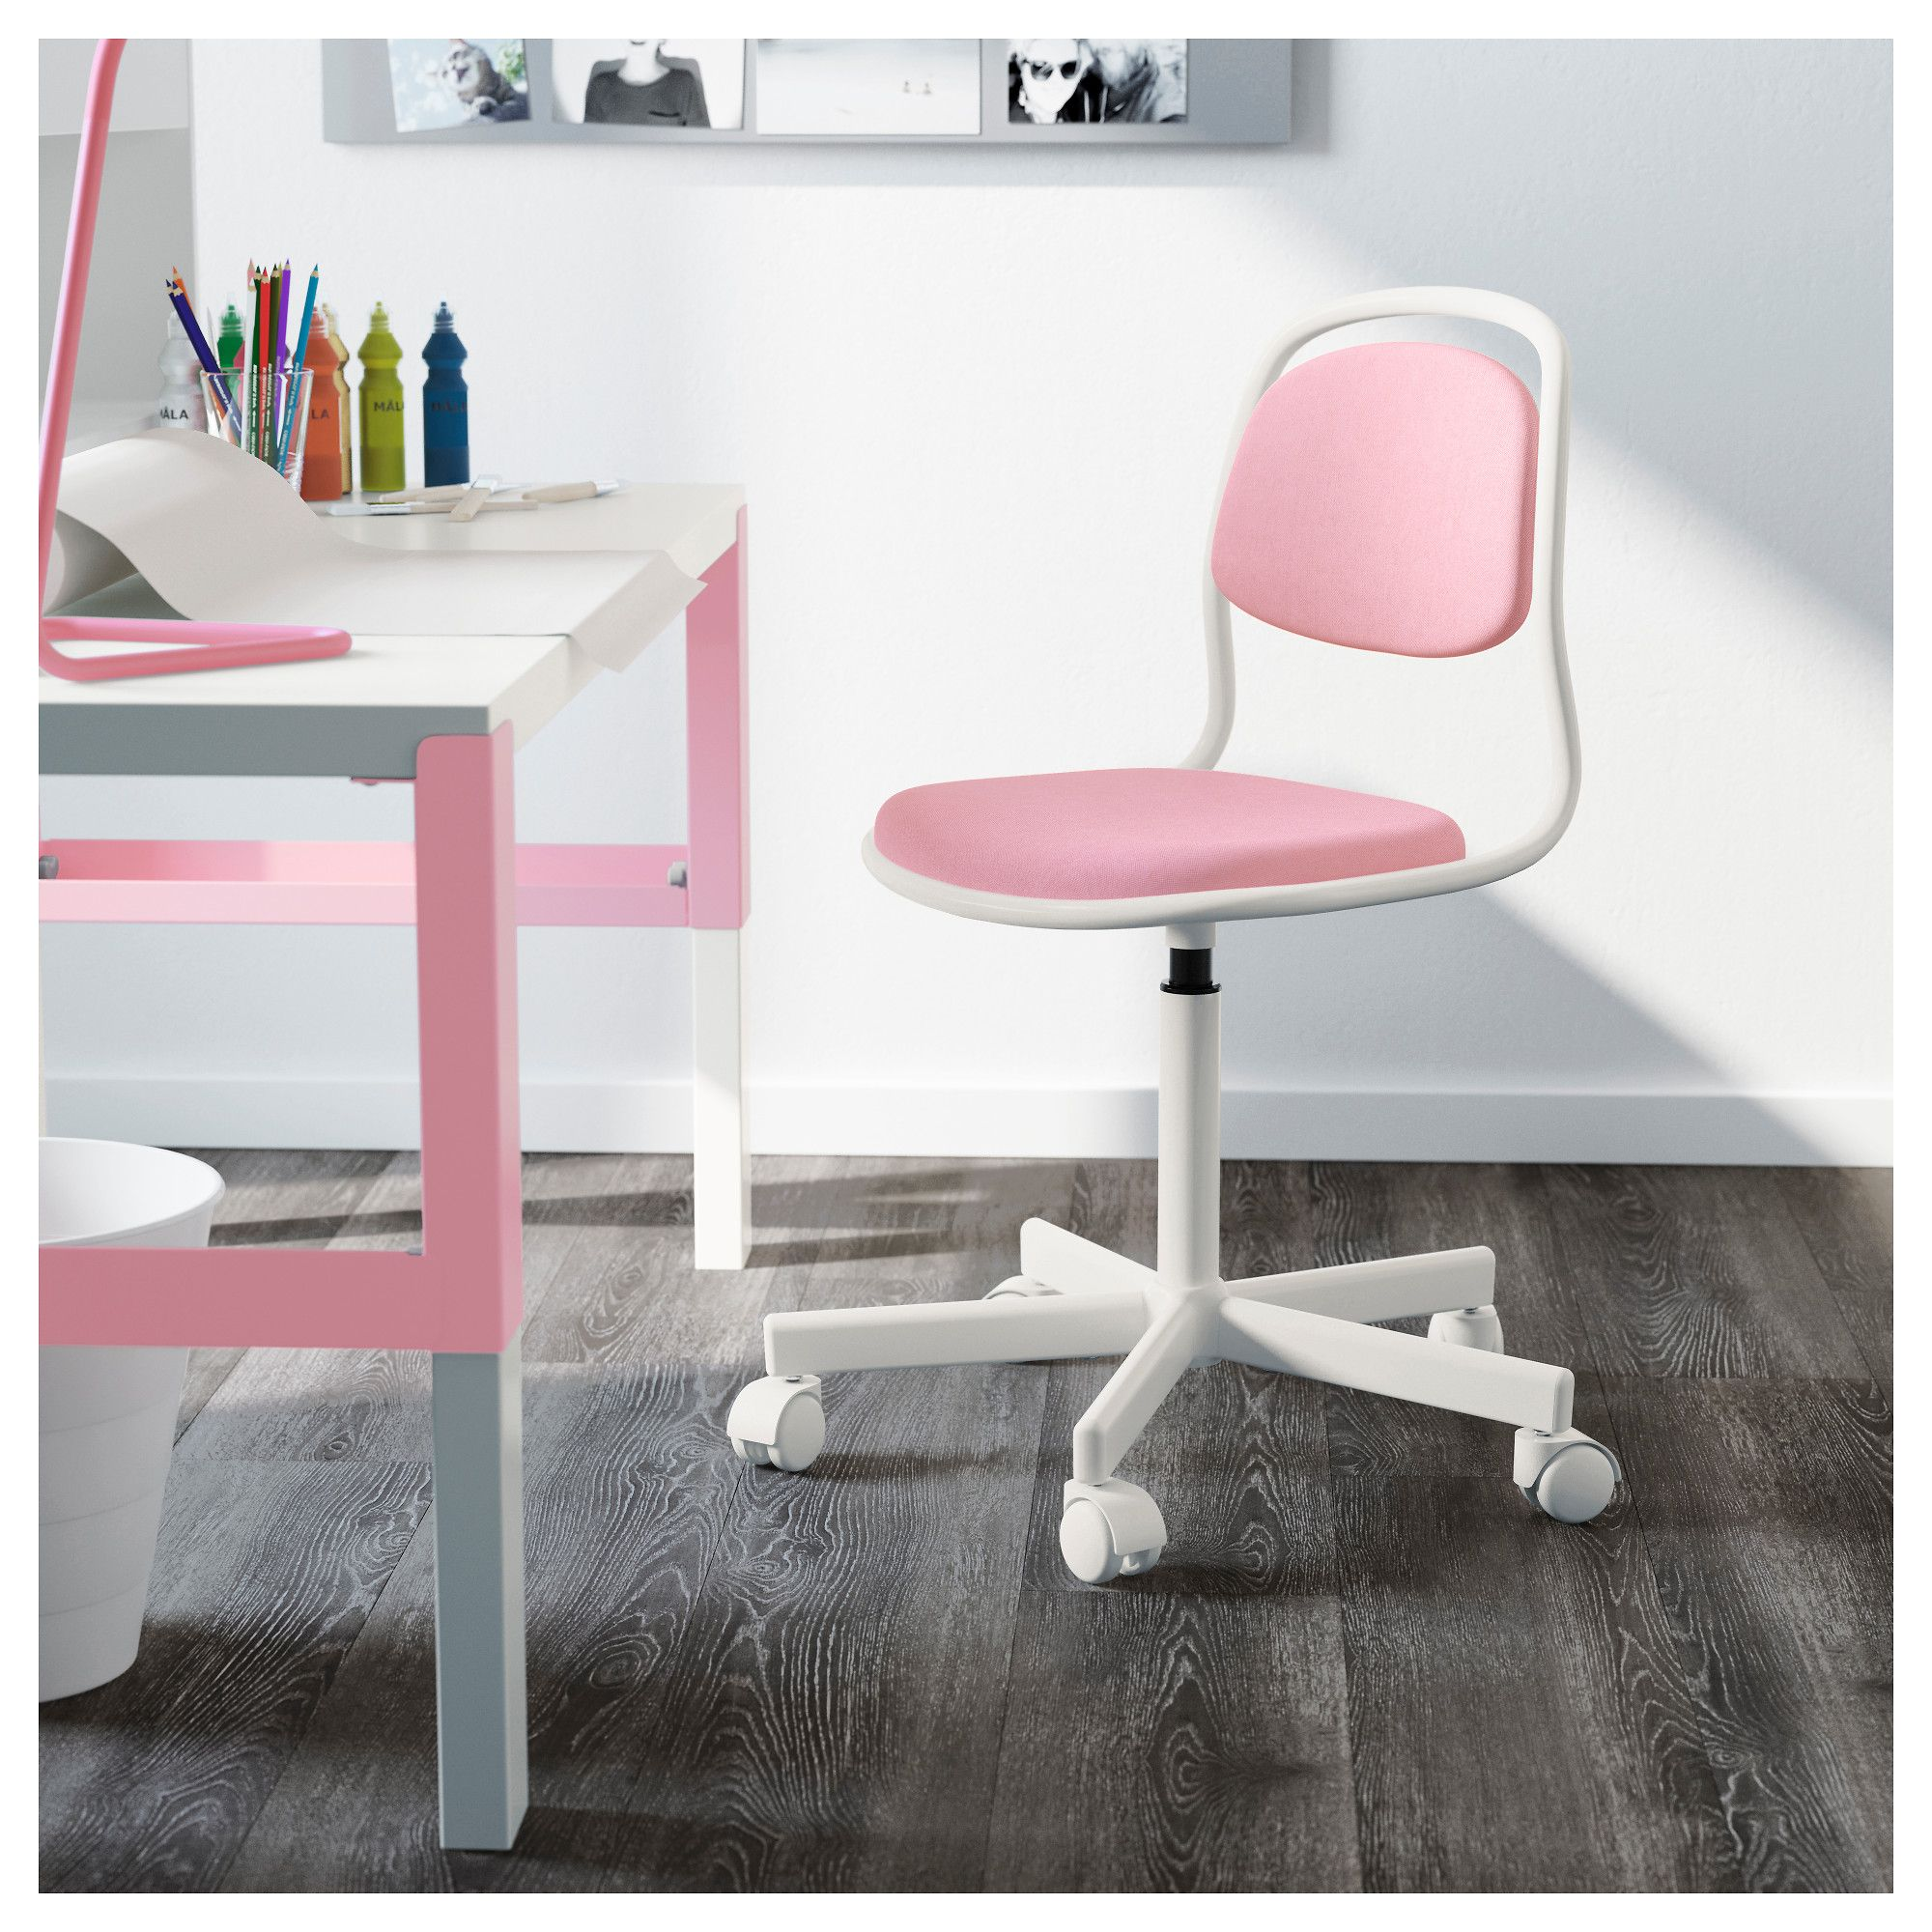 Furniture Home Furnishings Find Your Inspiration Childrens Desk And Chair Desk Chair Diy Diy Chair